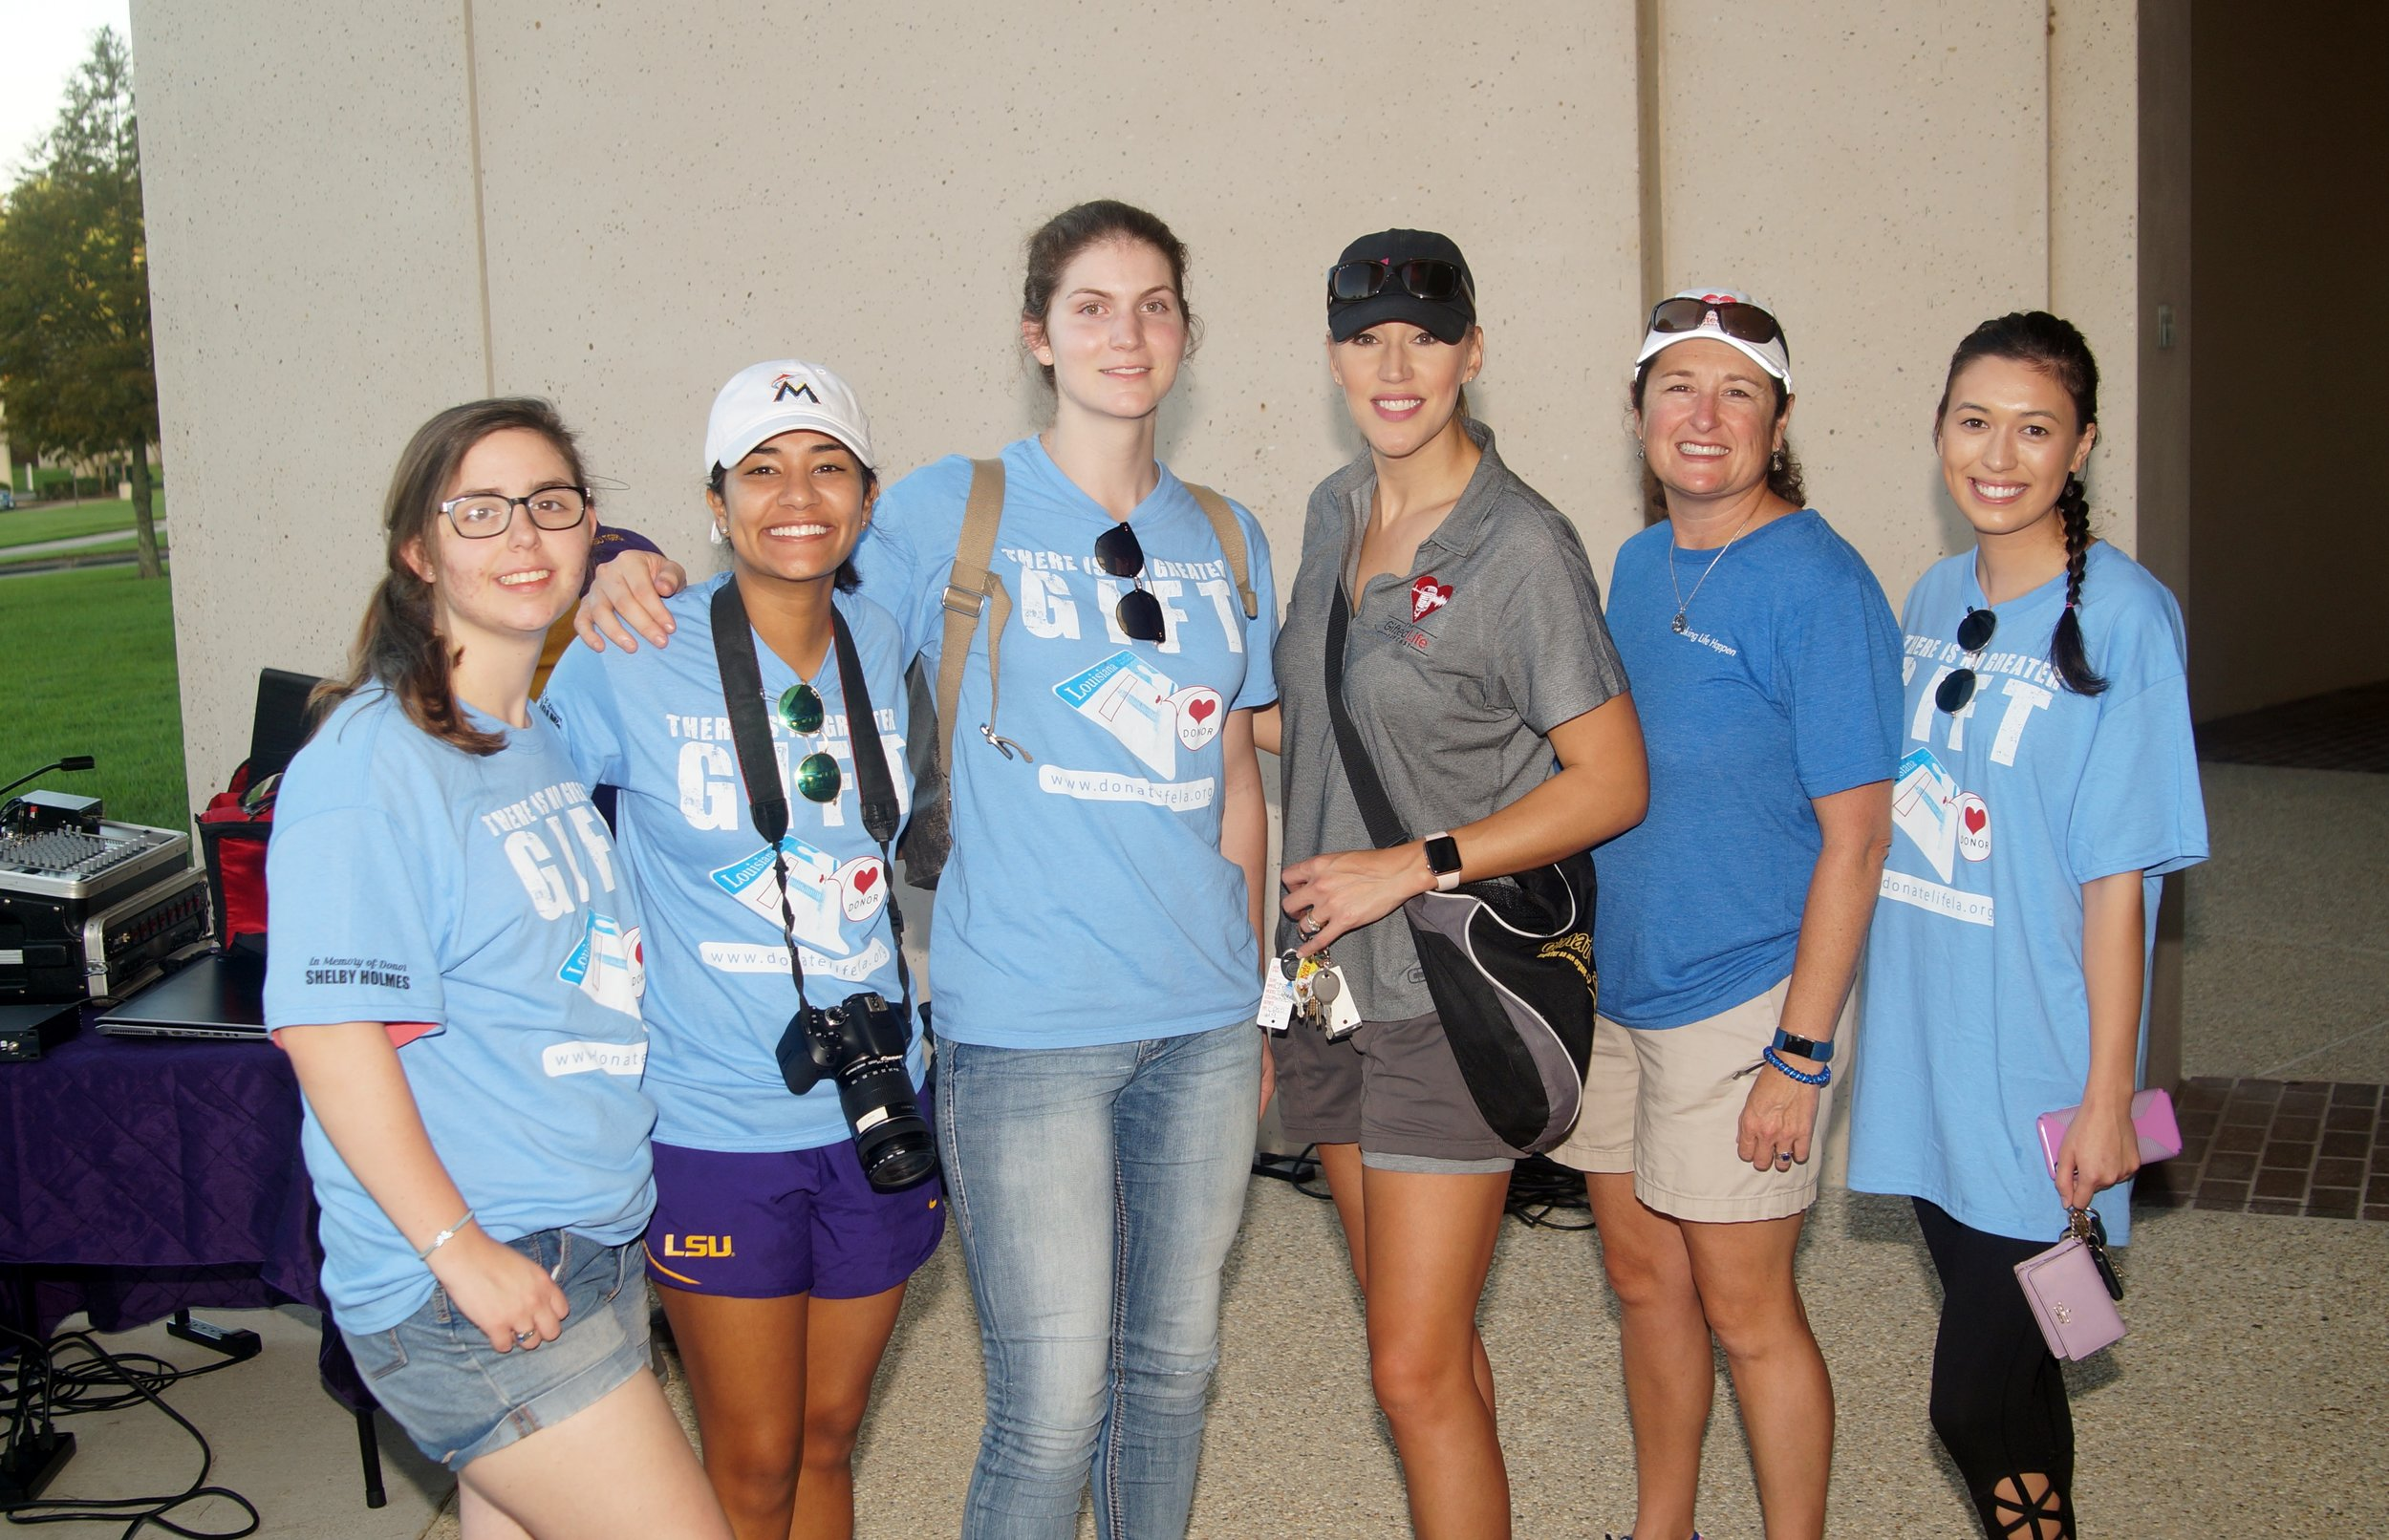 LSU Students with The Gifted Life's Lori Steele and Kirsten Heintz